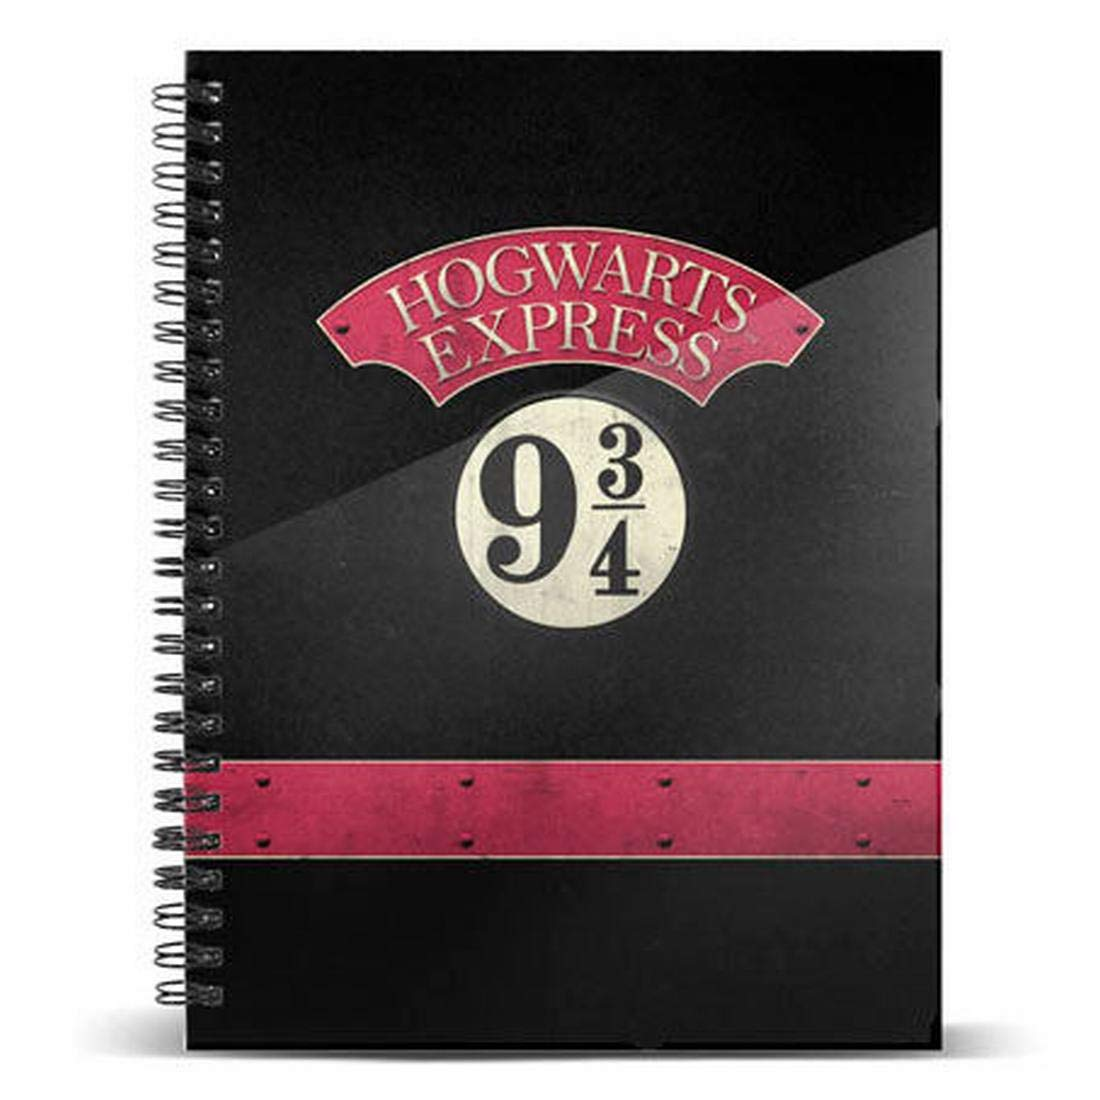 Harry Potter - Quaderno anelli Hogwarts Express - Prodotto Ufficiale Warner Bros